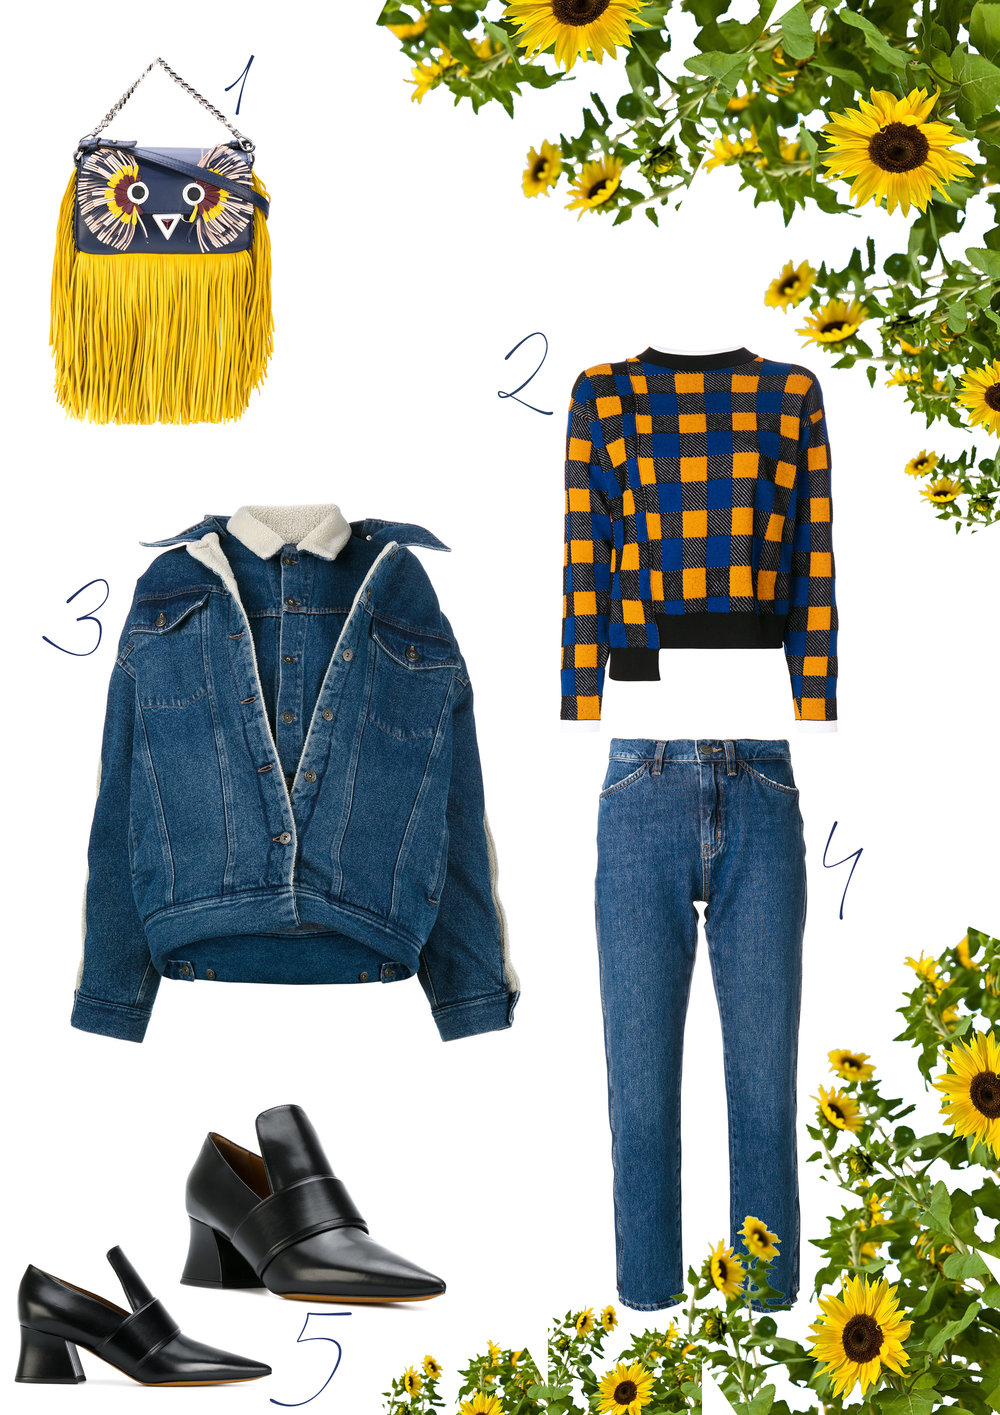 1. Fendi bag, find it  here  // 2. Marni jumper, find it  here  // 3. Y/Project denim jacket, find it  here  // 4. Mih jeans, find them  here  // 5. Givenchy loafers, find them  here .